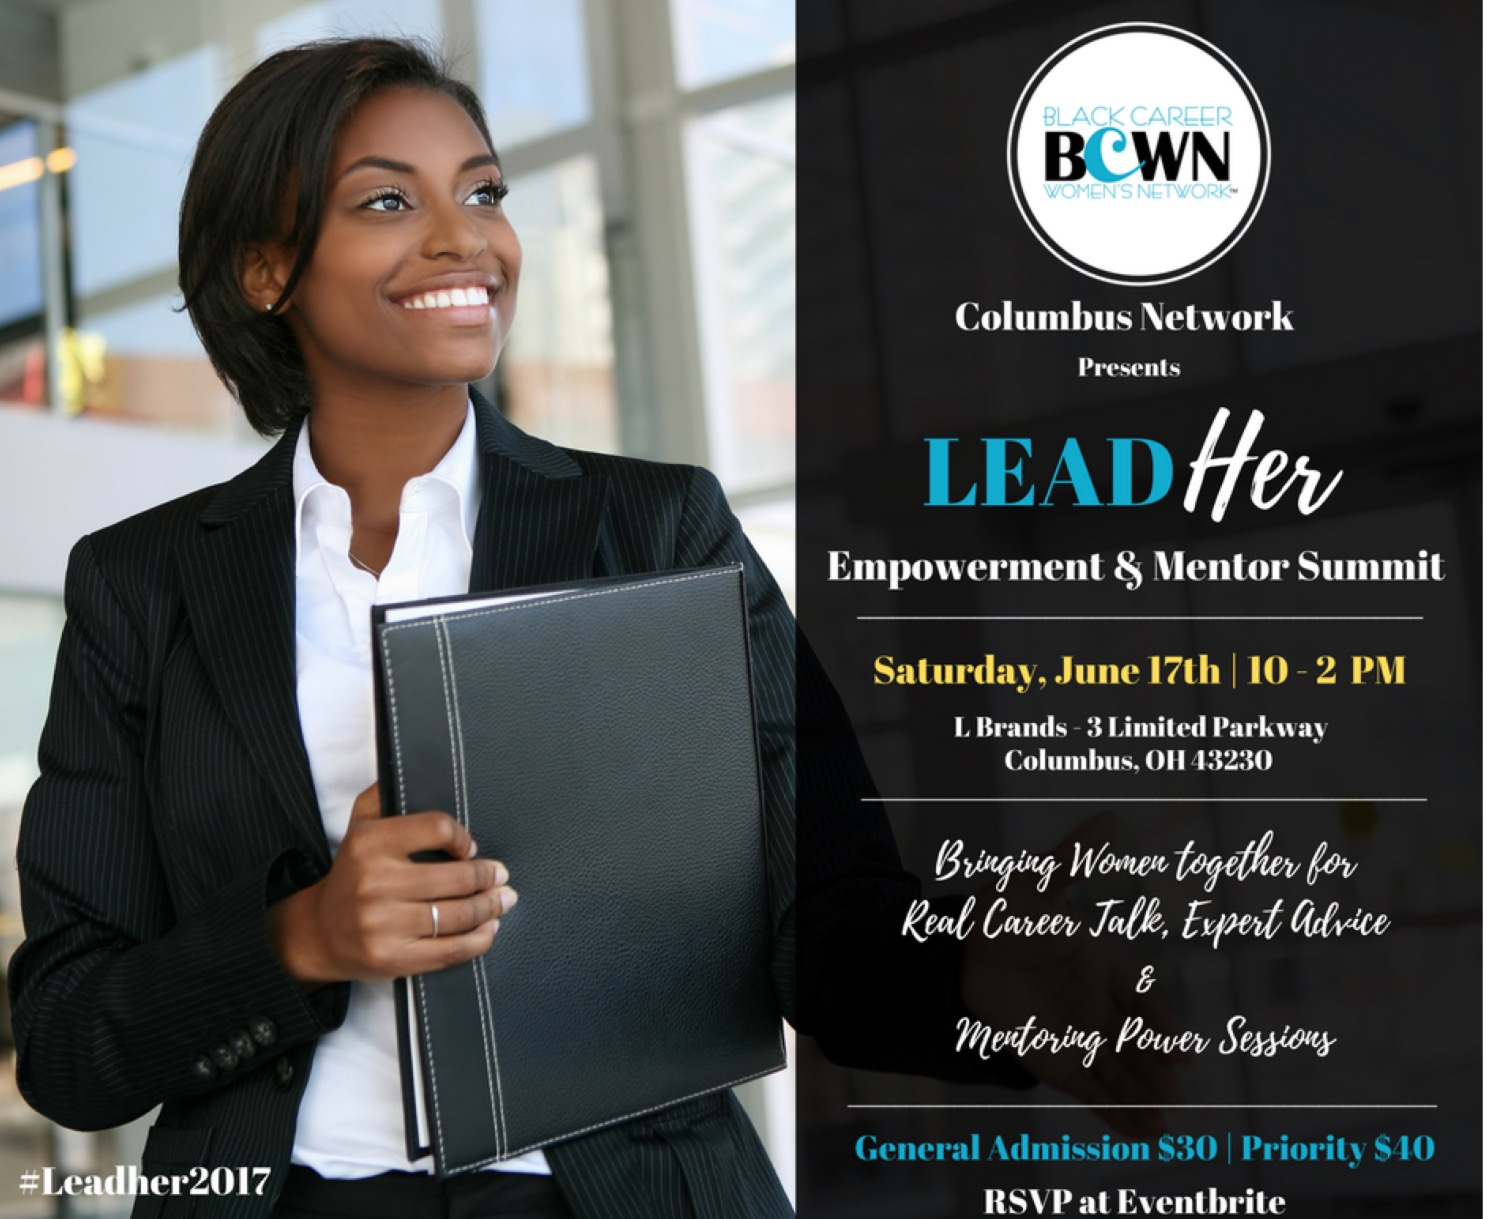 Lead Her Empowerment Conference